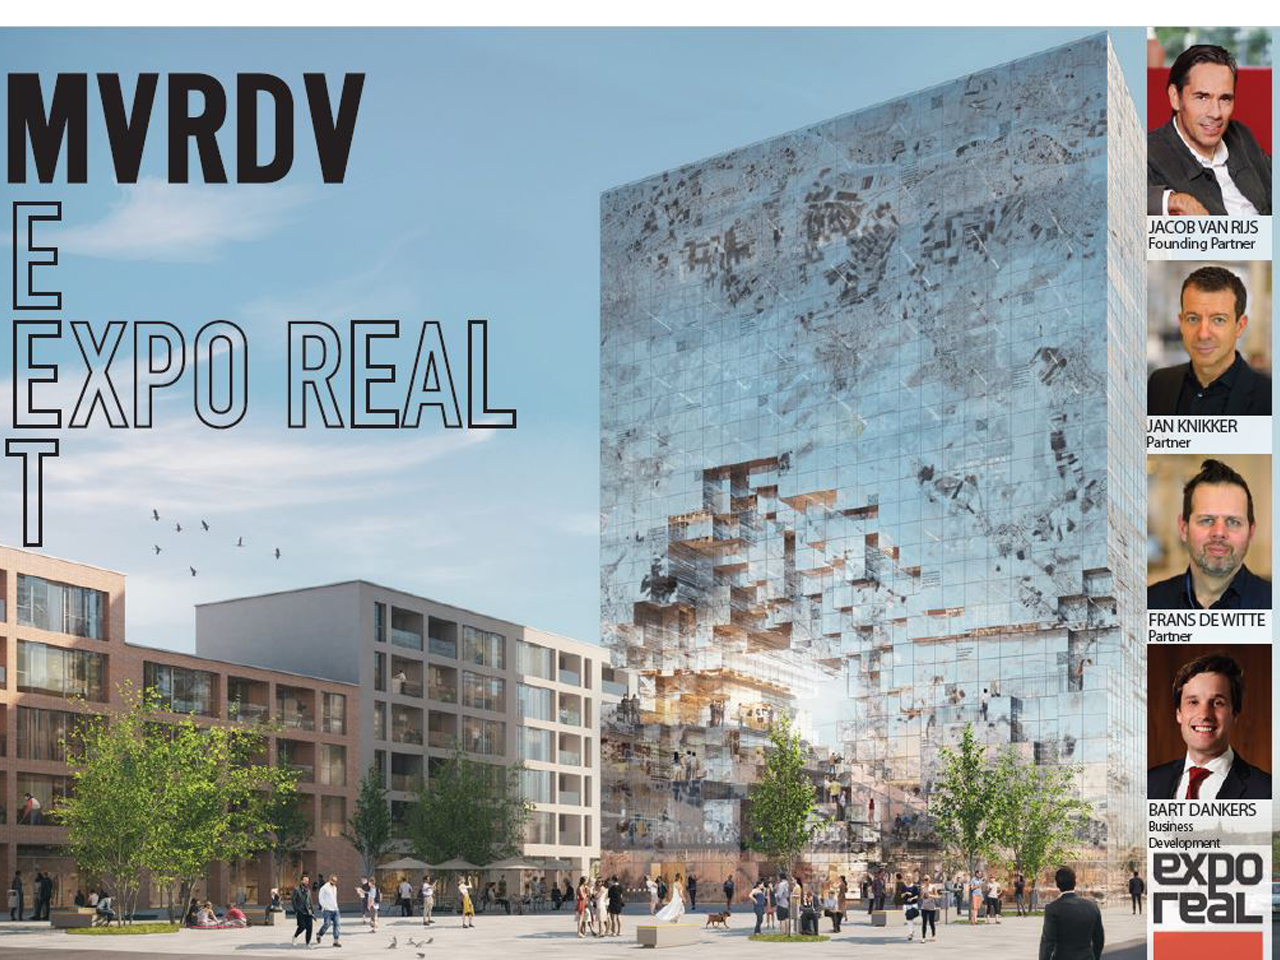 Meet MVRDV at EXPO REAL in Munich